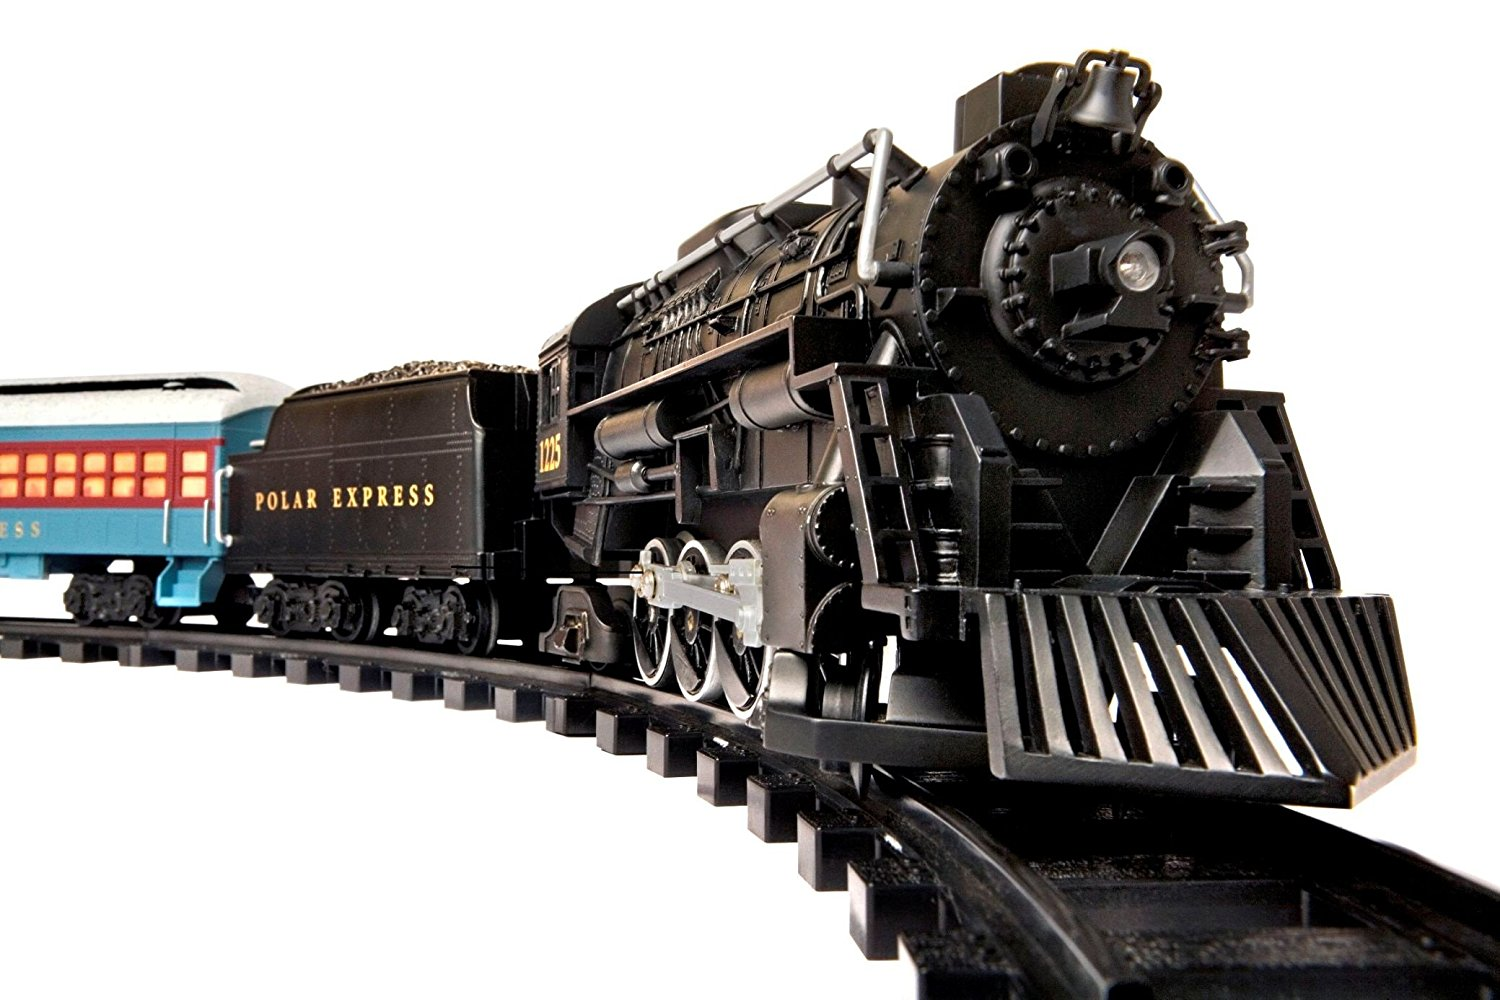 Best Train Sets Lionel Polar Express Train Set